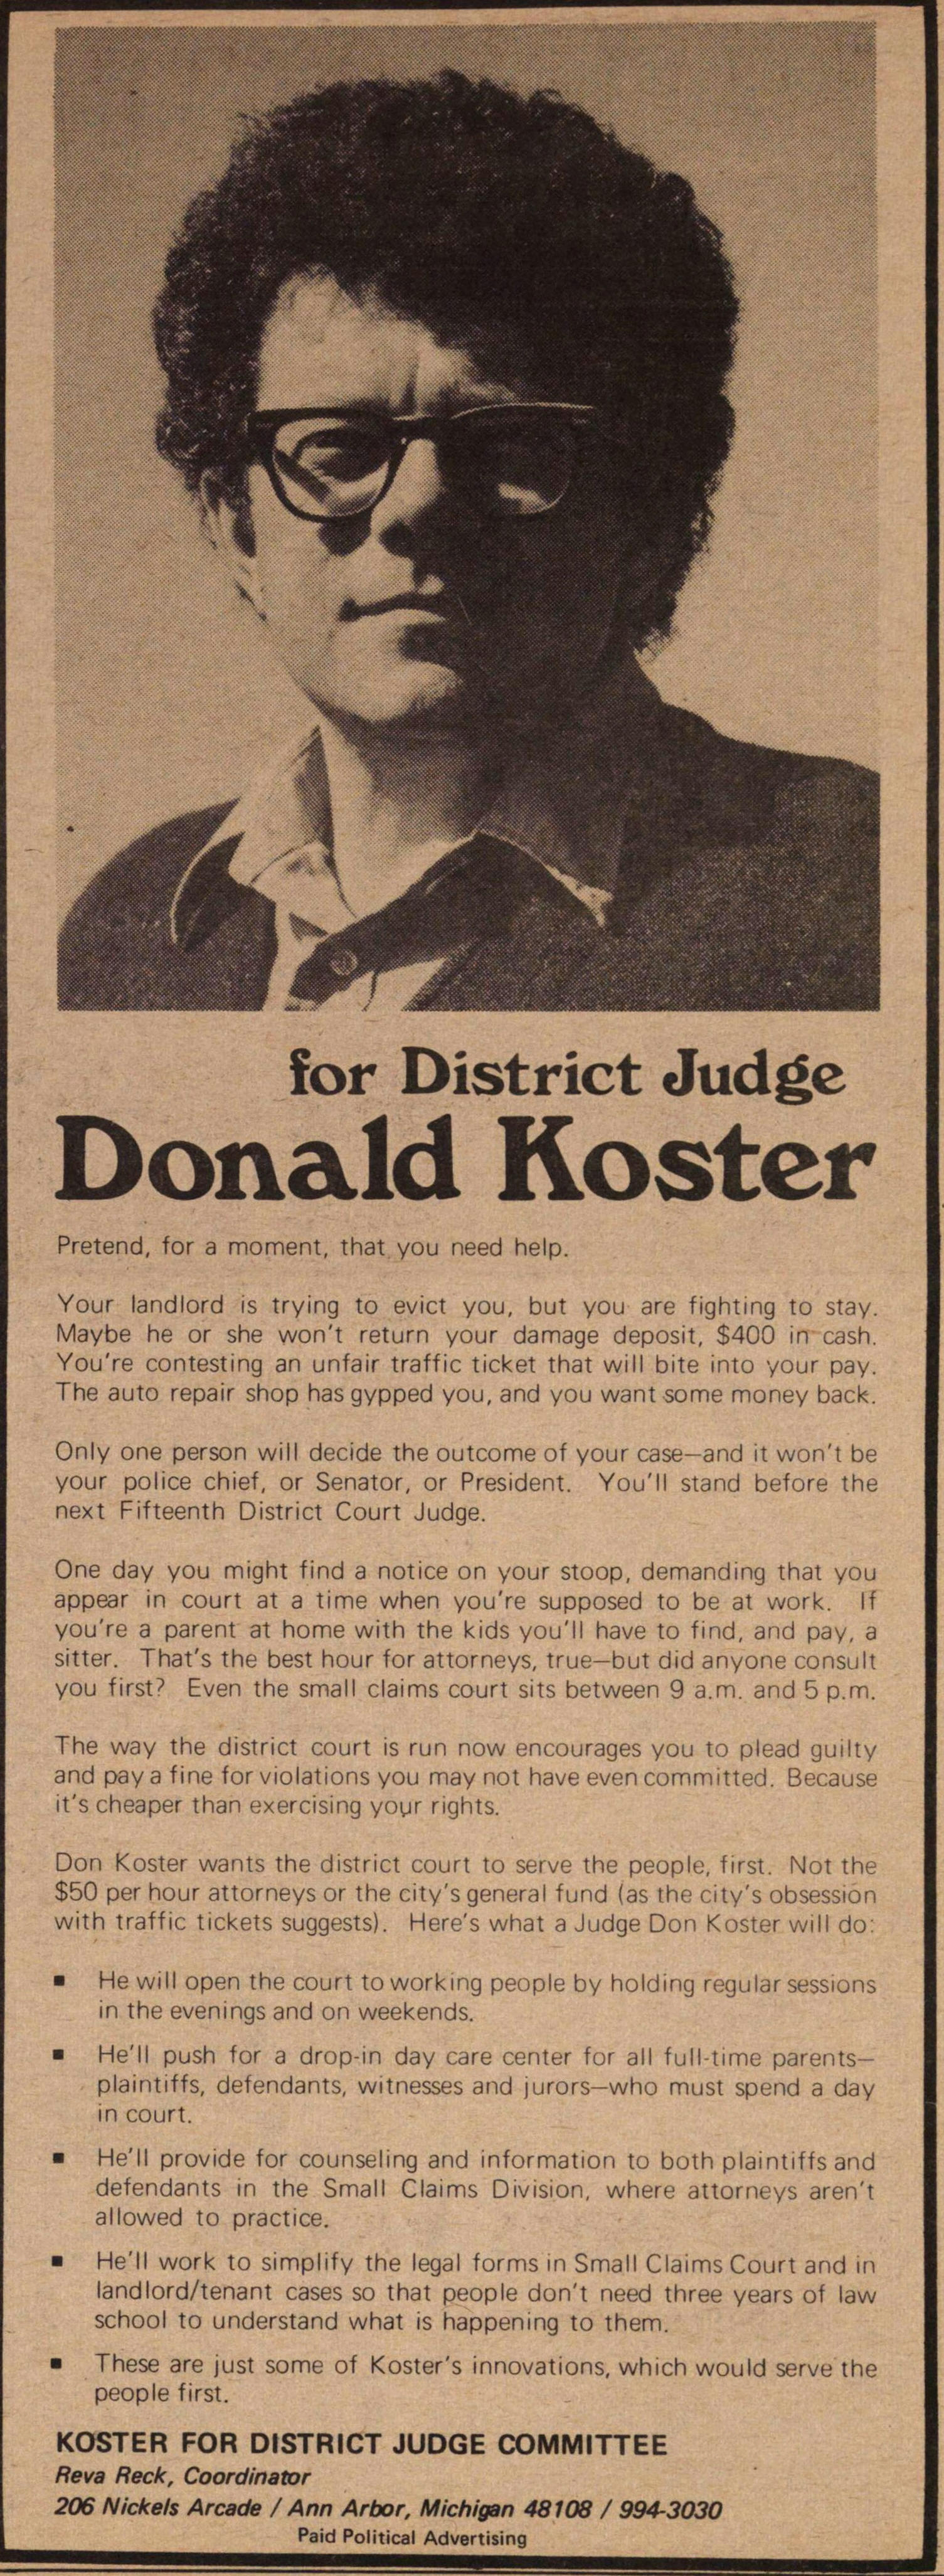 Donald Koster image